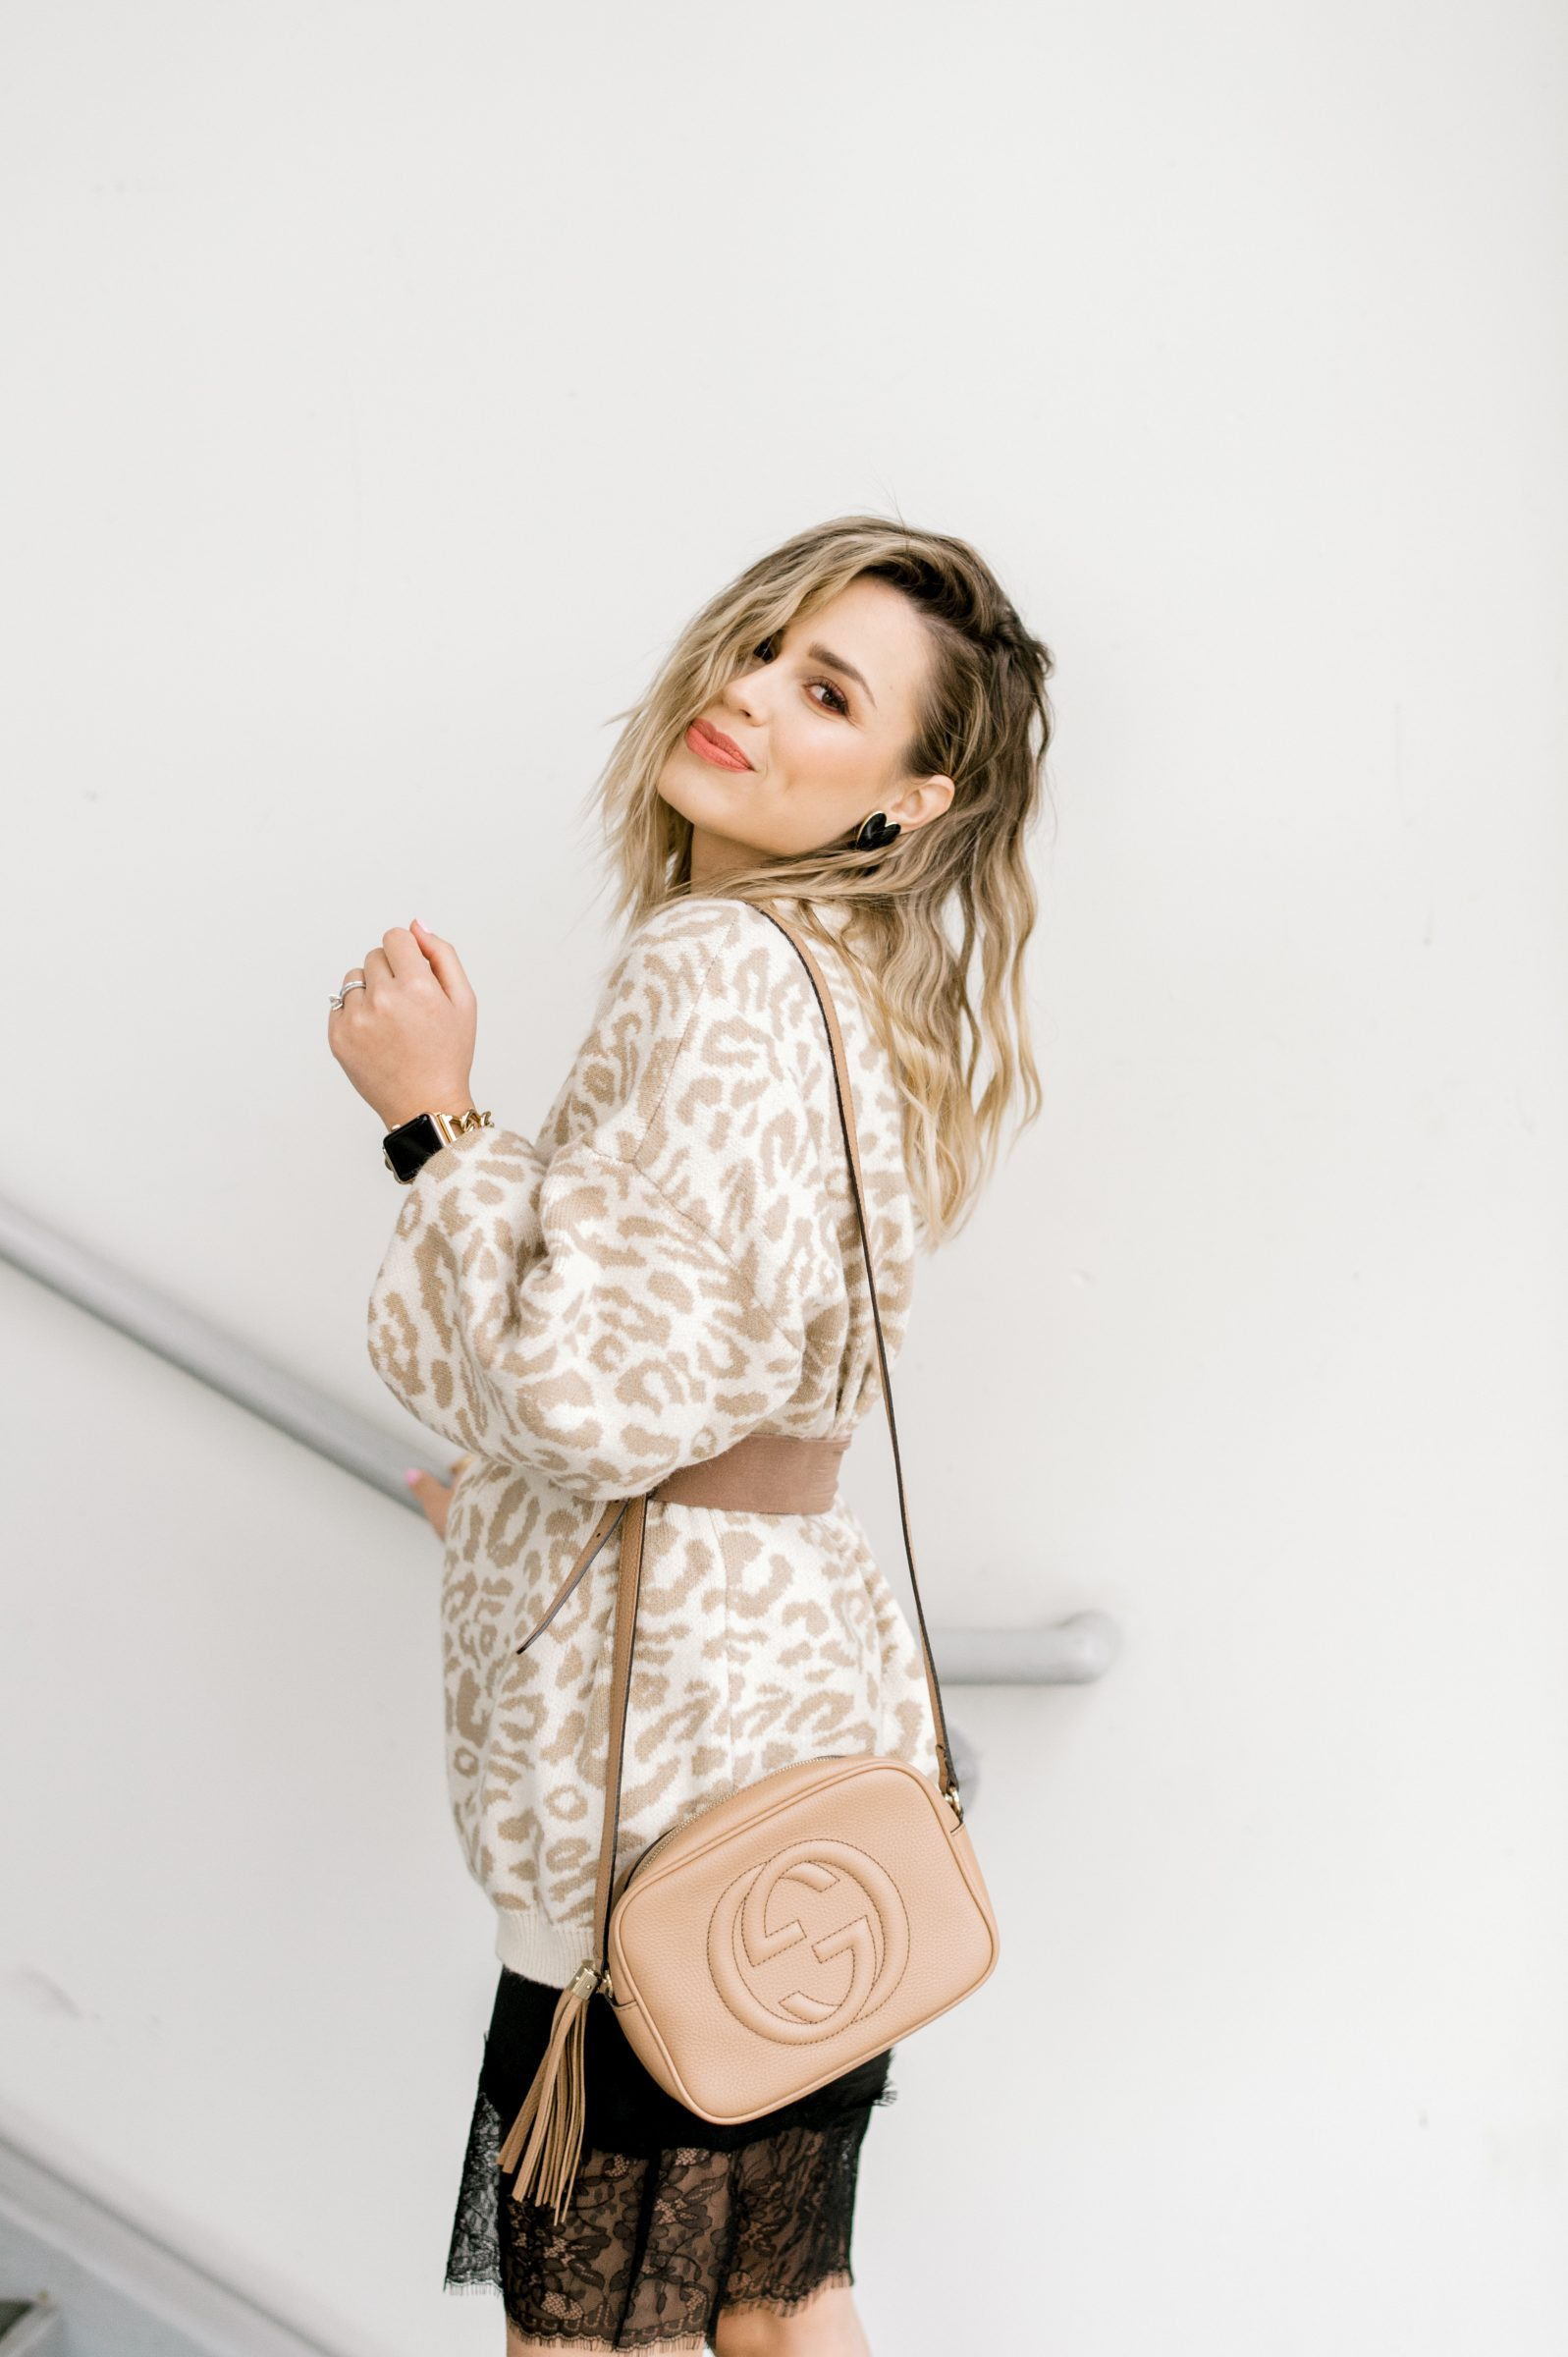 Houston fashion blogger Uptown with Elly Brown wears a leopard sweater and a Gucci Soho Disc crossbody bag